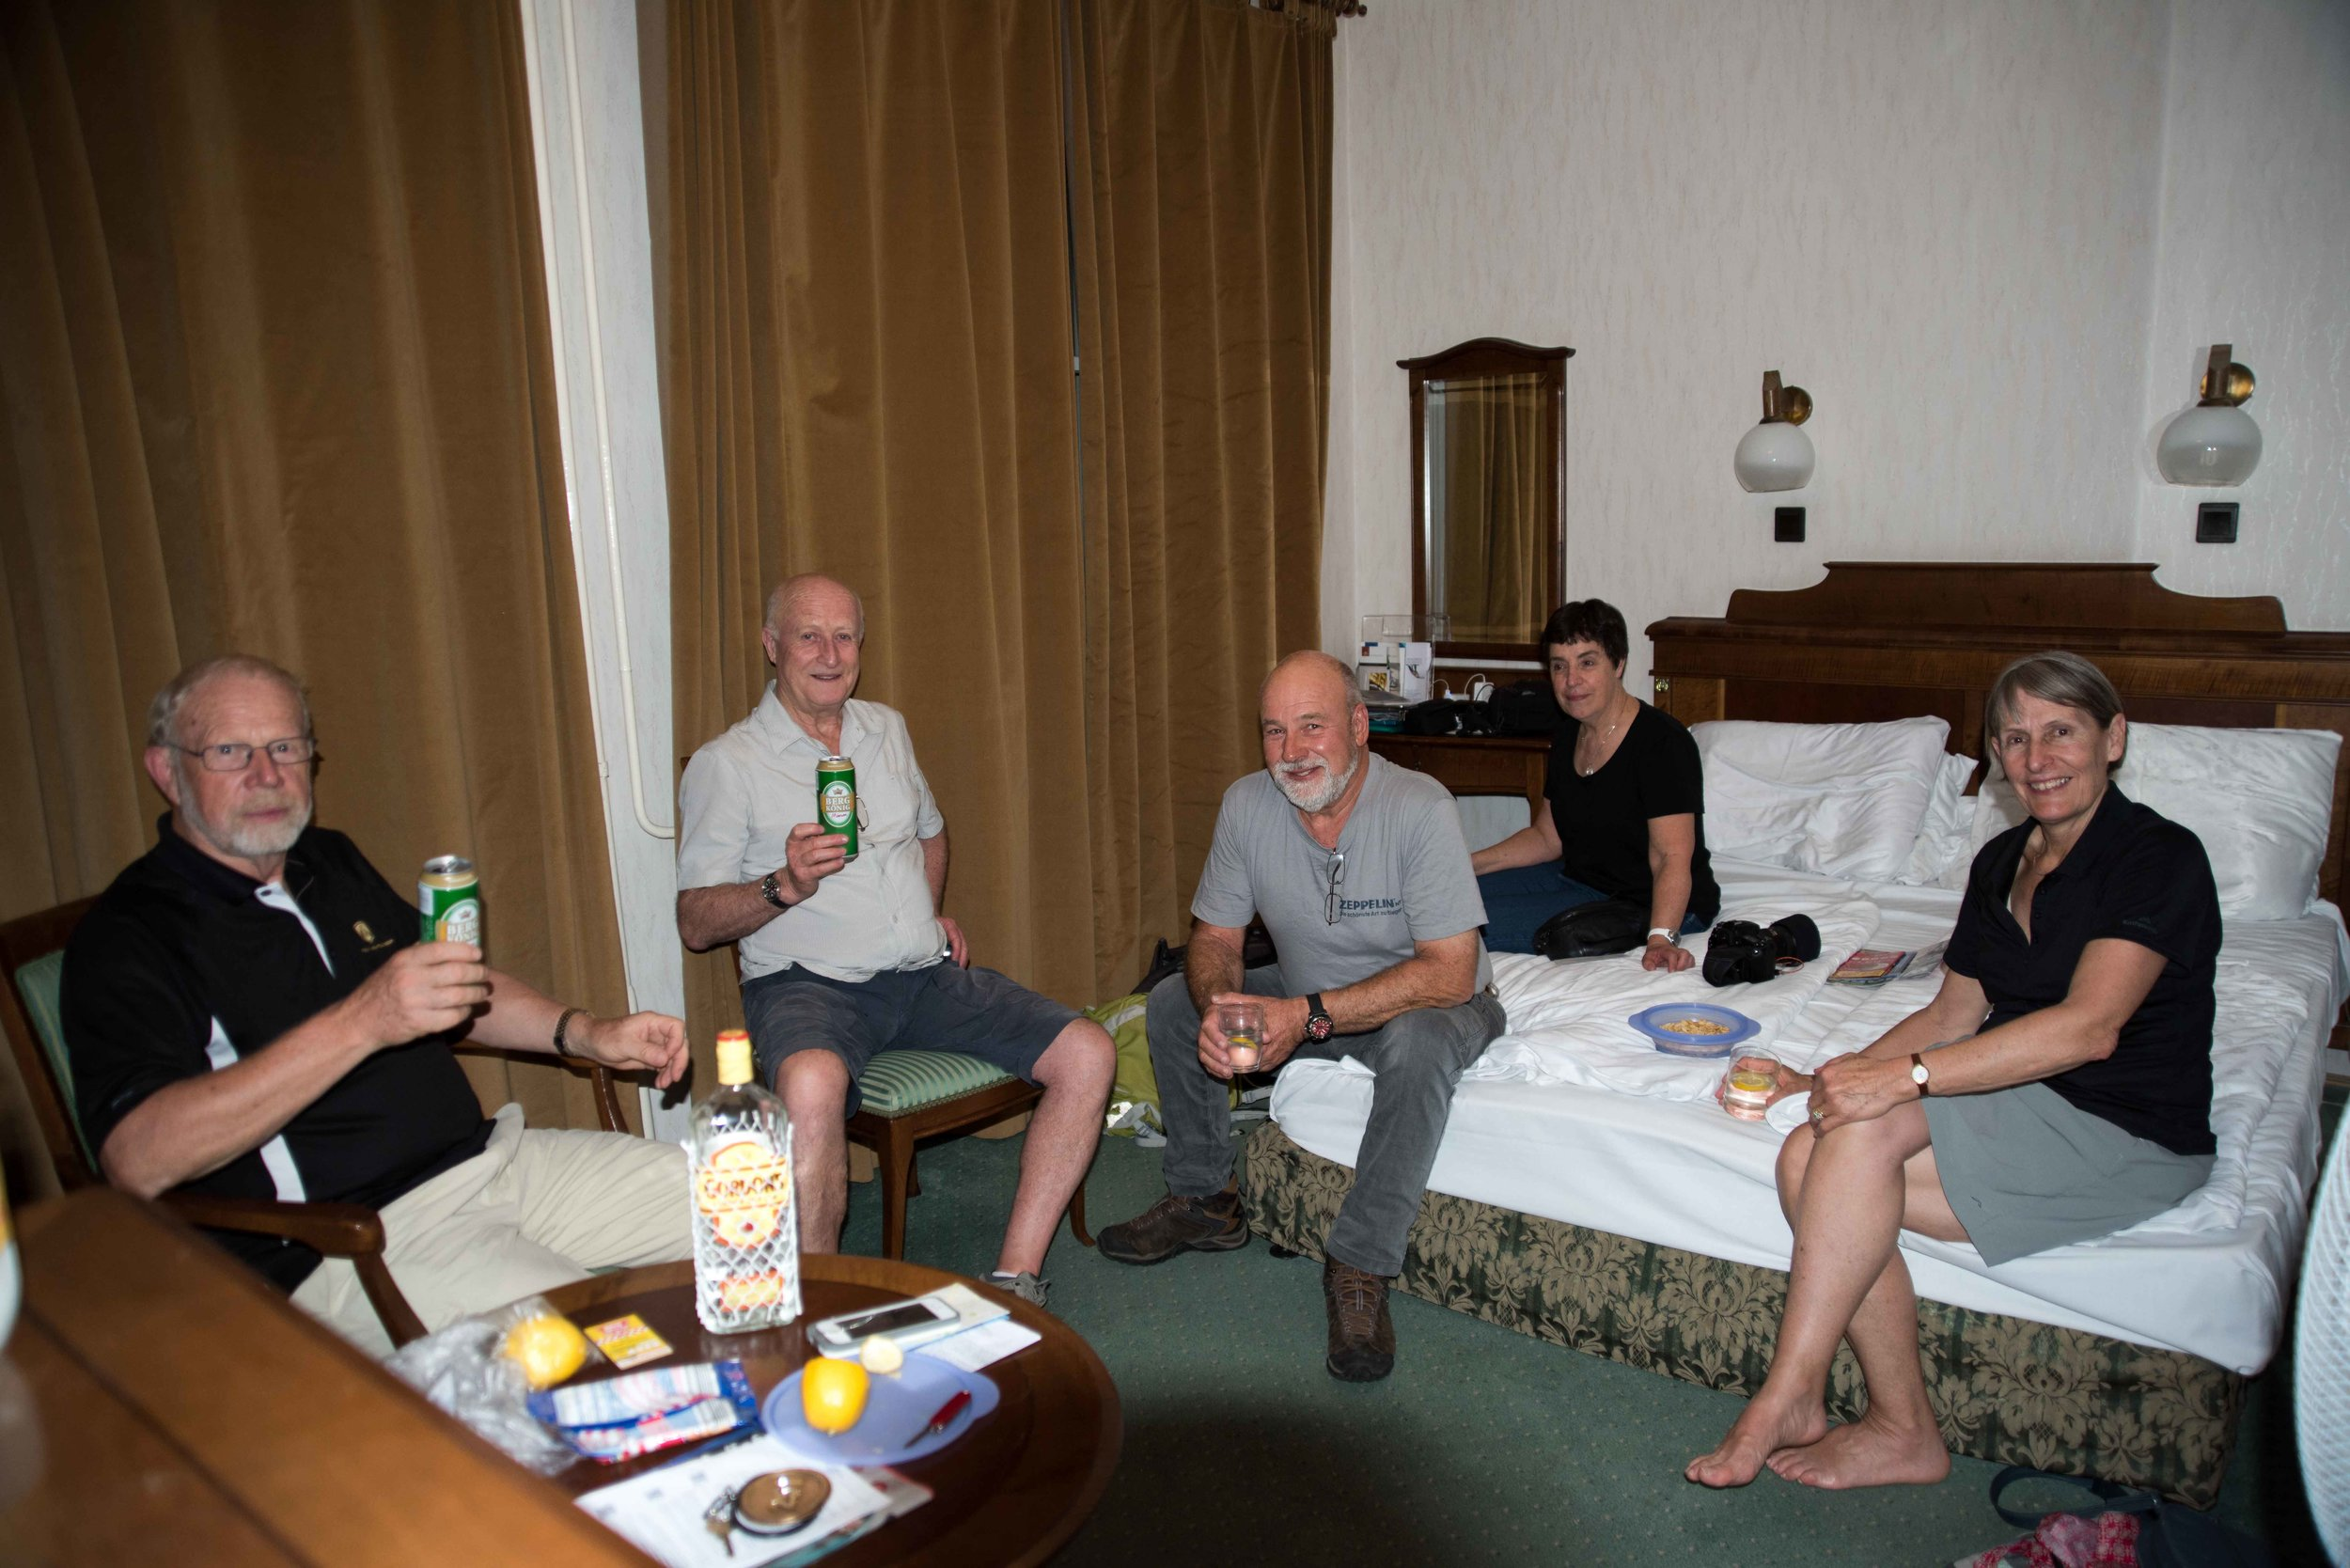 Drinks in our room at Danibius Hotel Gellert, Budapest